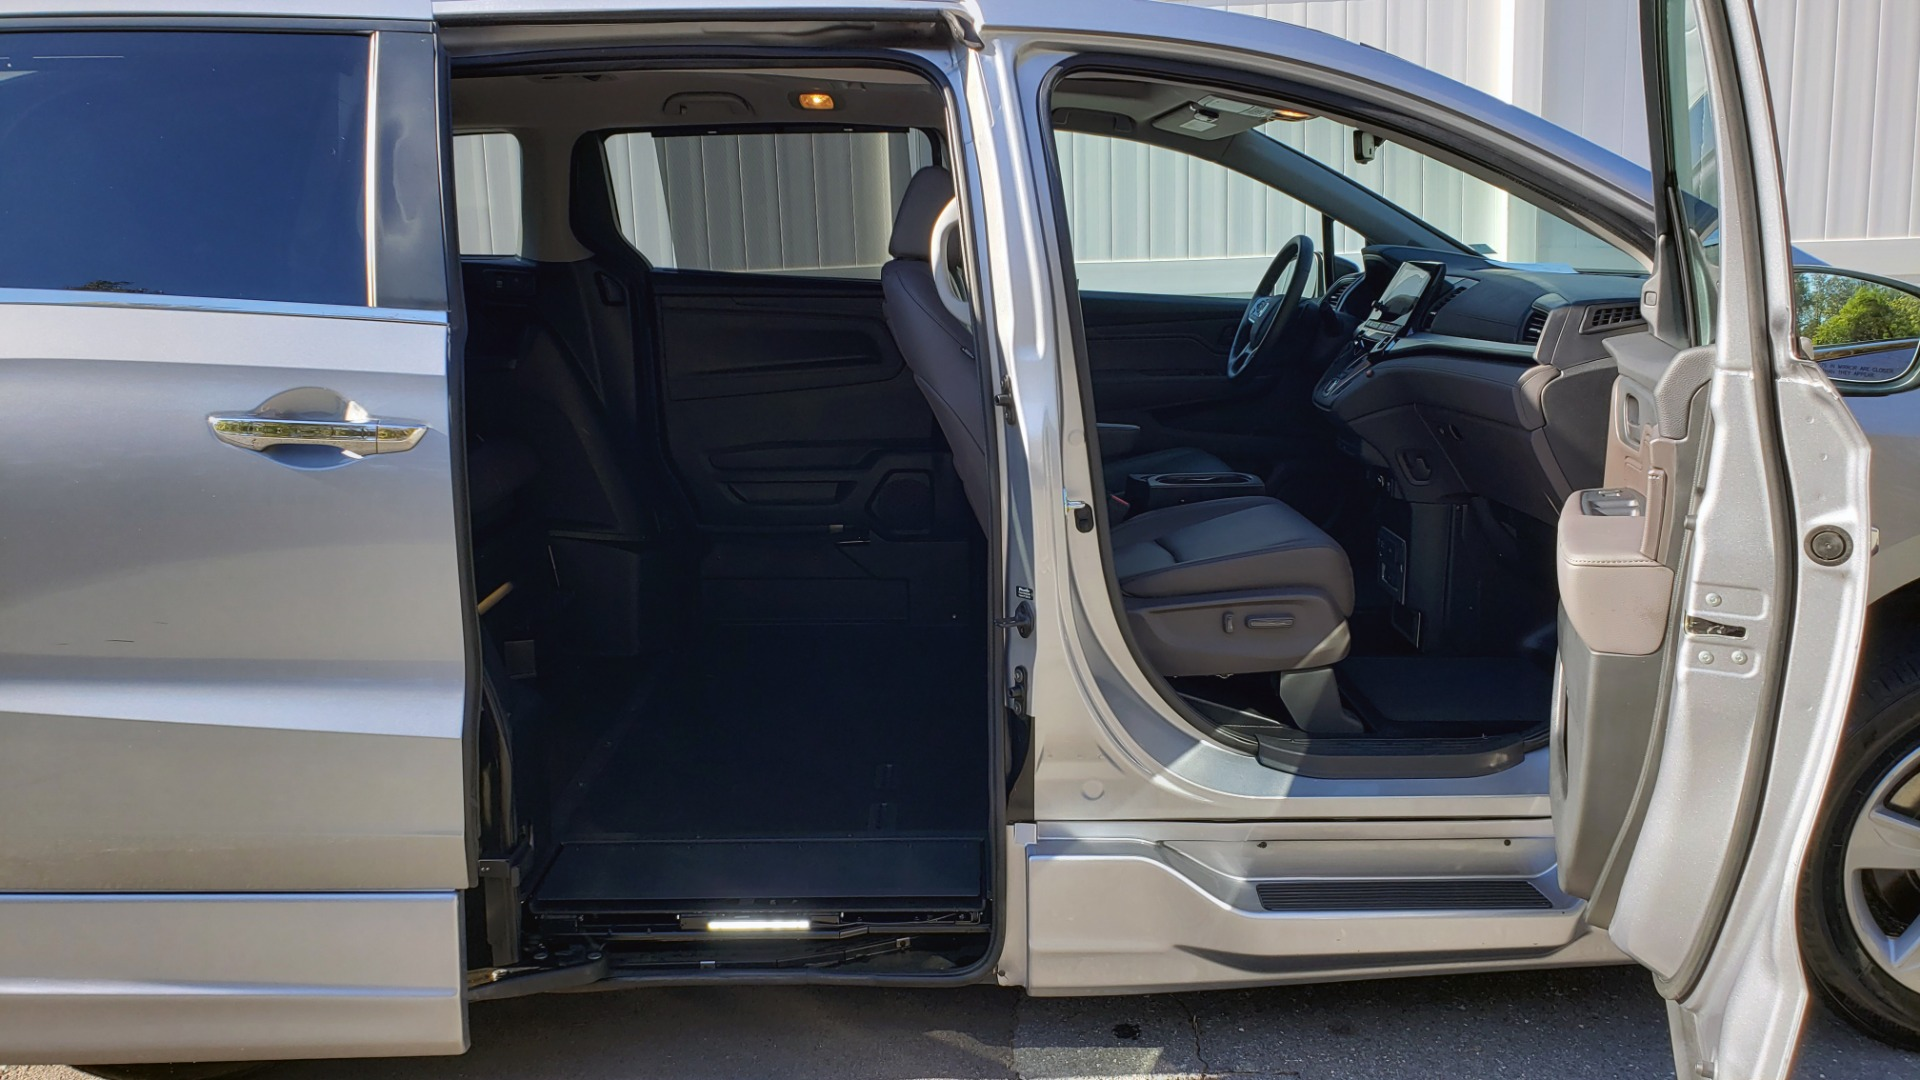 Used 2019 Honda ODYSSEY EX-L BRAUNABILITY / NAV / RES / LKA / BLUE-RAY / SUNROOF / REARVIEW for sale $49,999 at Formula Imports in Charlotte NC 28227 35